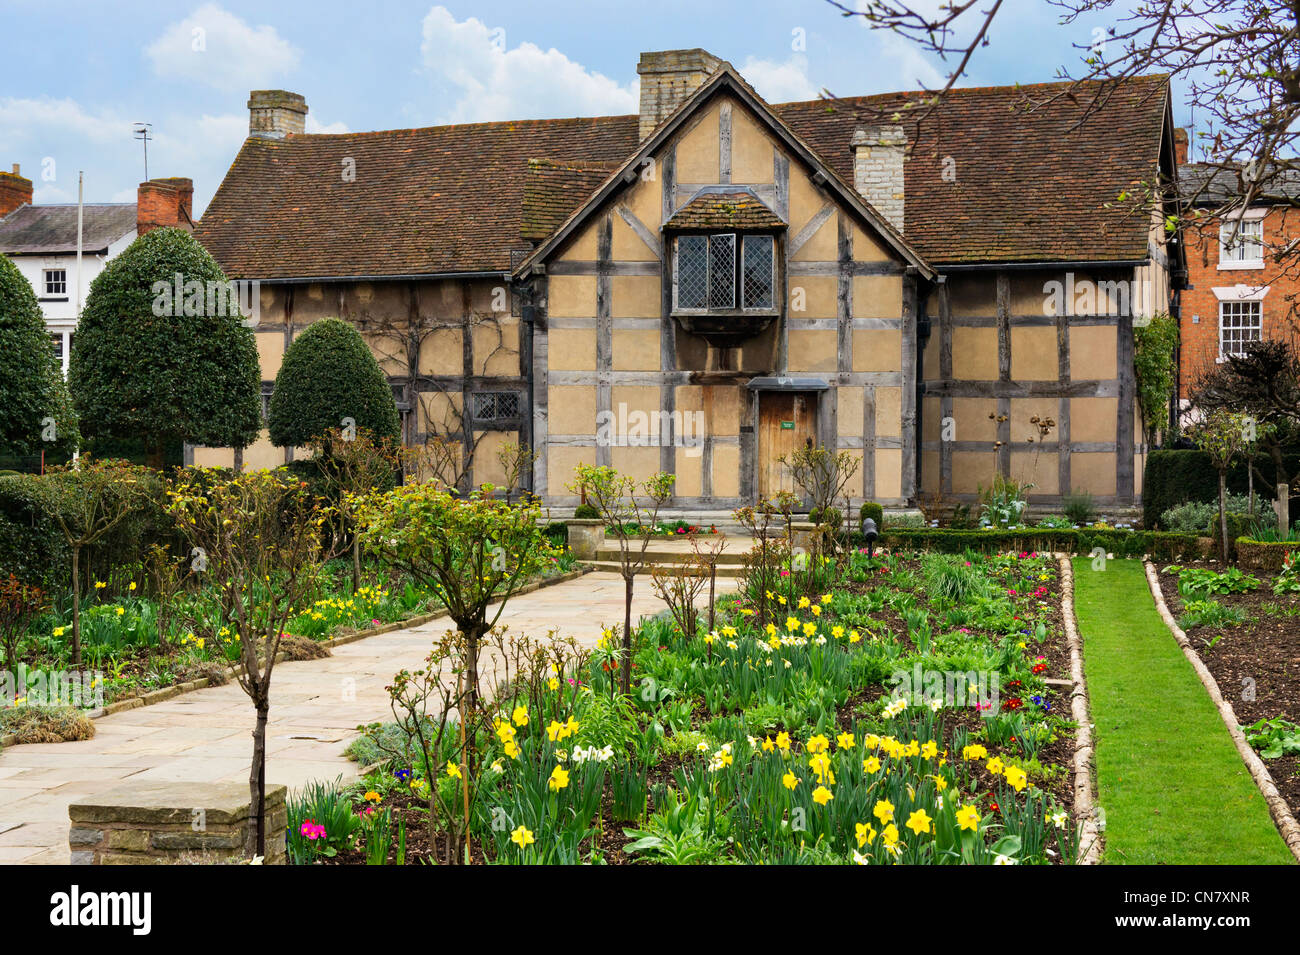 The birthplace of William Shakespeare from the gardens, Henley Street, Stratford-upon-Avon, Warwickshire, England, - Stock Image